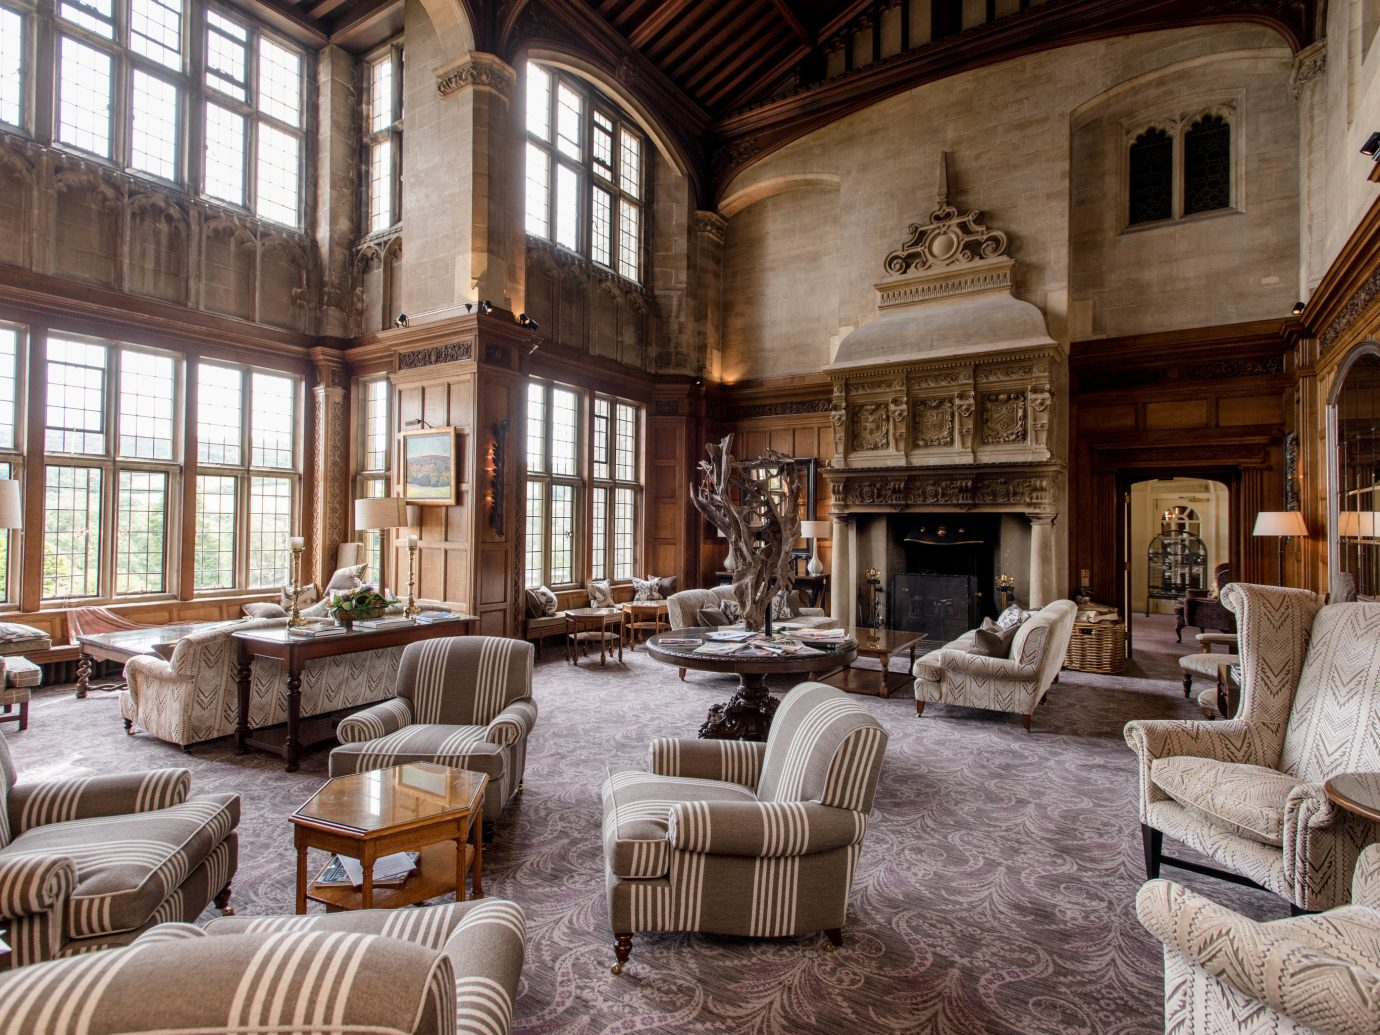 Romance Trip Ideas Weekend Getaways Living sofa room window property estate building furniture living room home interior design mansion palace wood Lobby decorated